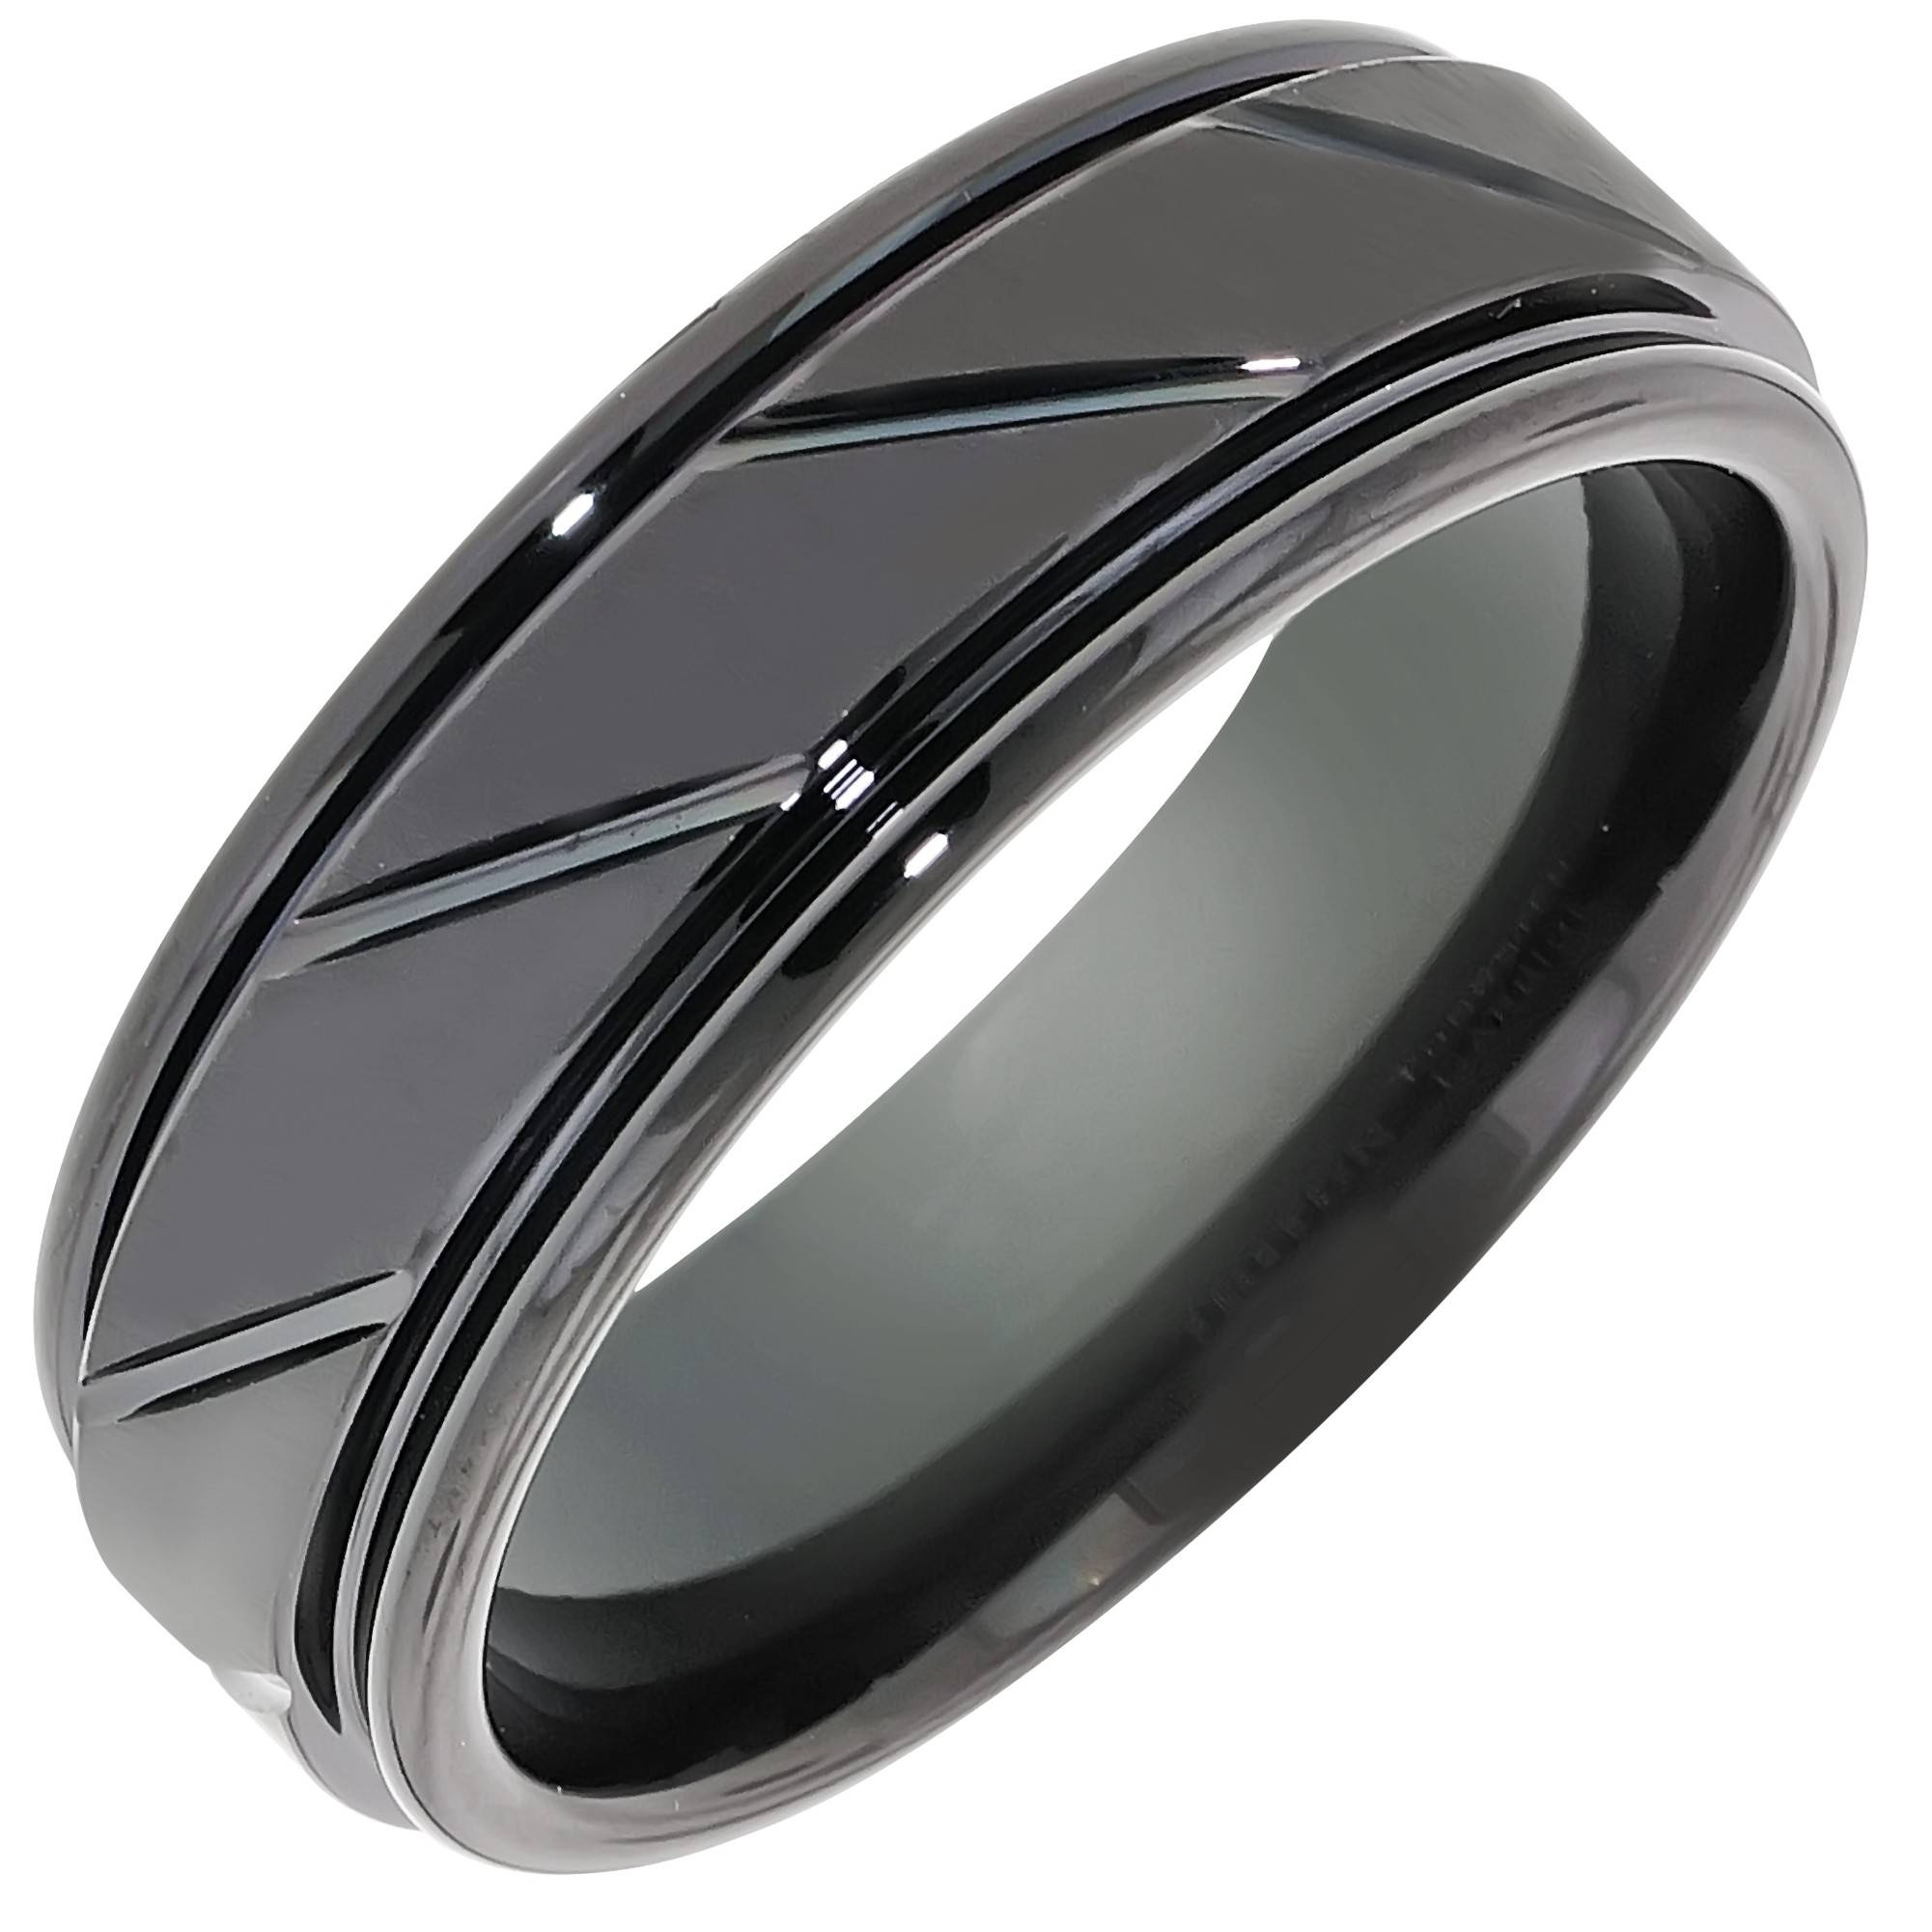 Mens Comfort Fit Wedding Band In Black Tungsten (7Mm) Pertaining To Black Tungsten Wedding Bands (View 11 of 15)